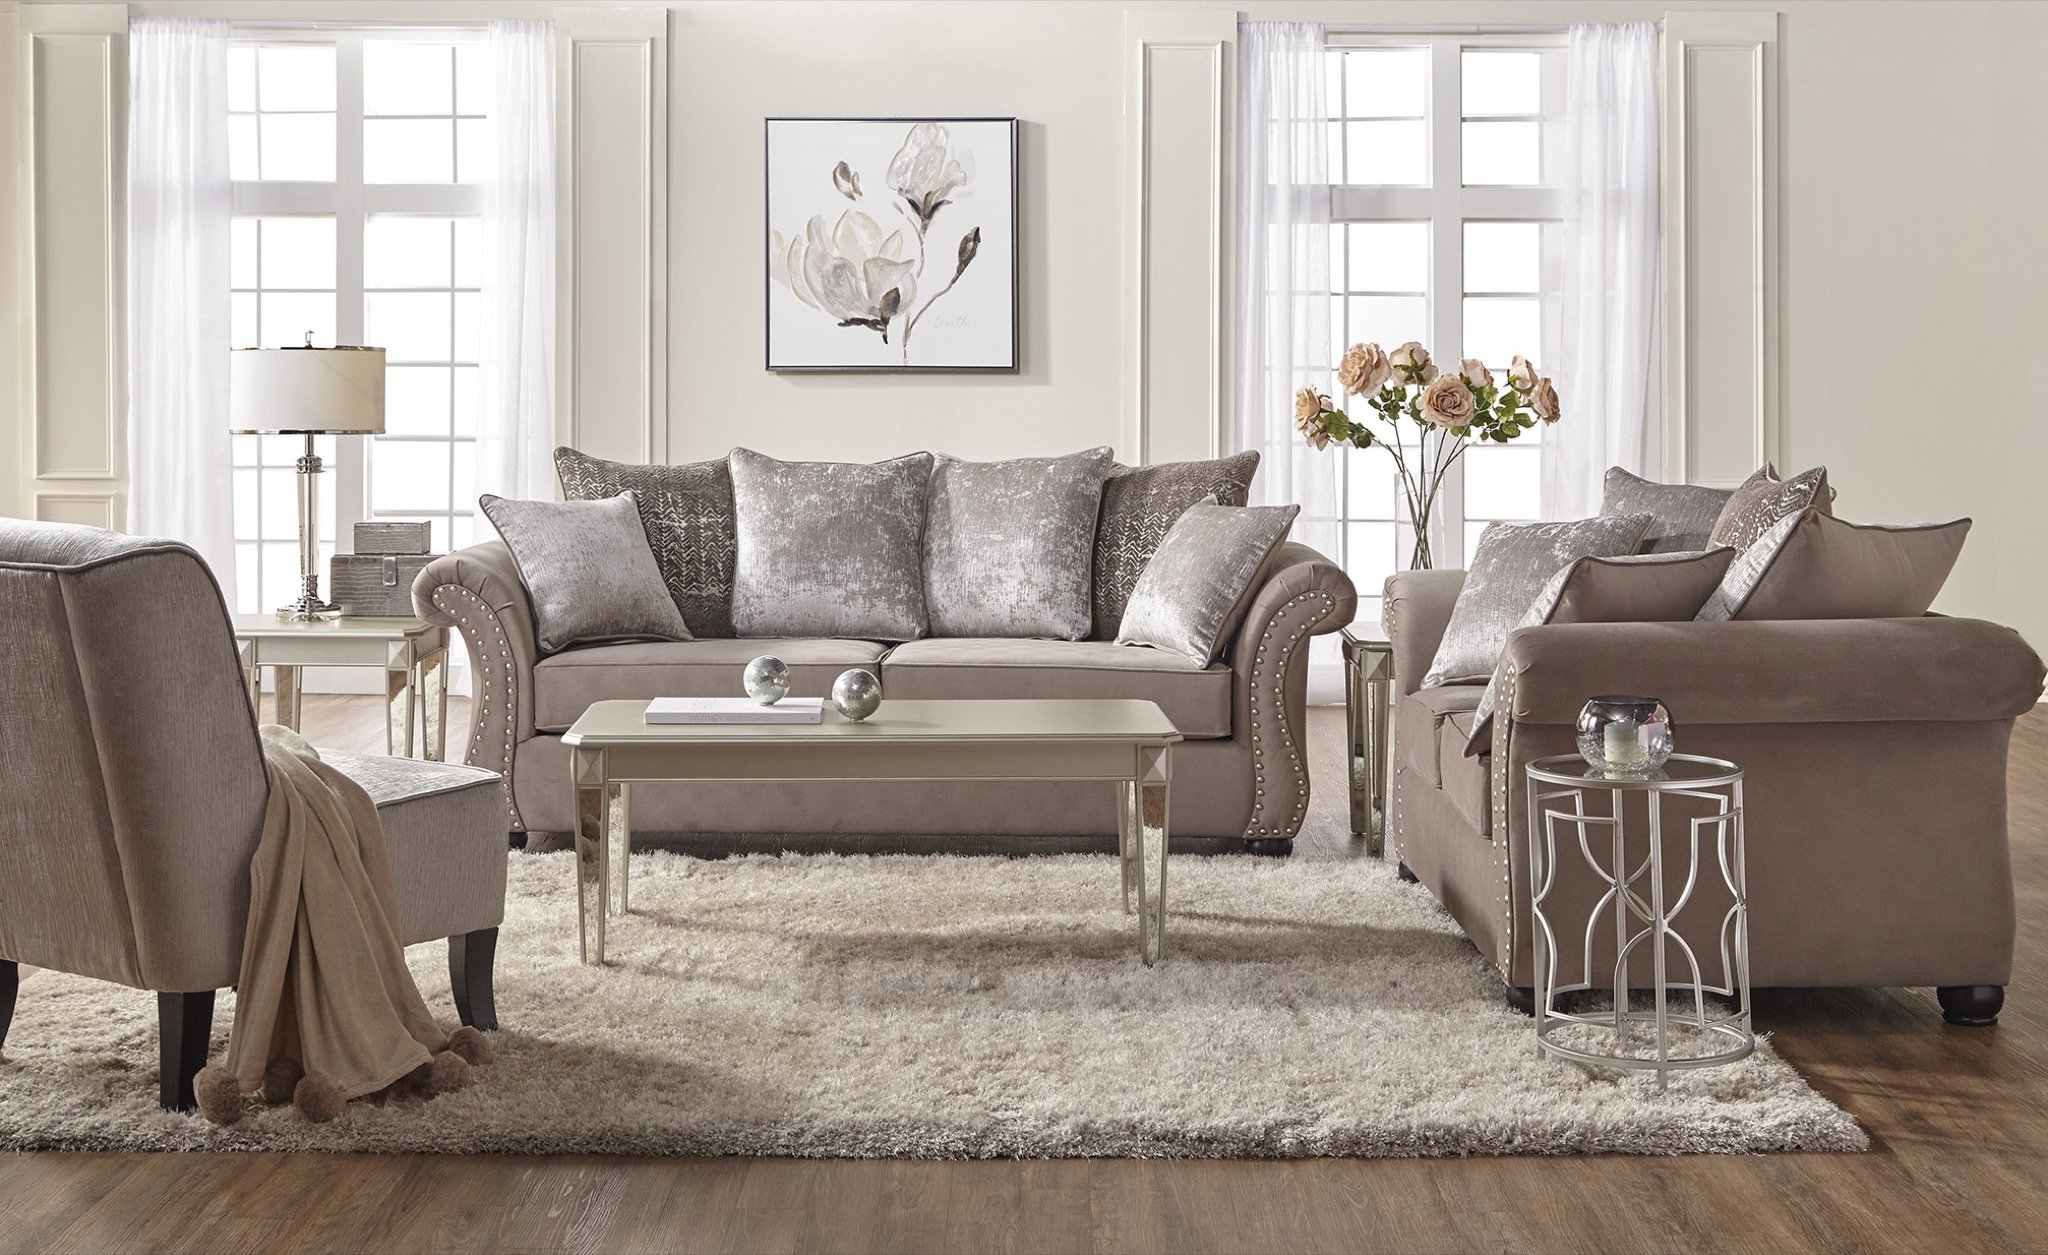 House Of Hampton Bedingfield Contemporary 2 Piece Living Room Set pertaining to 12 Smart Initiatives of How to Upgrade New Living Room Sets